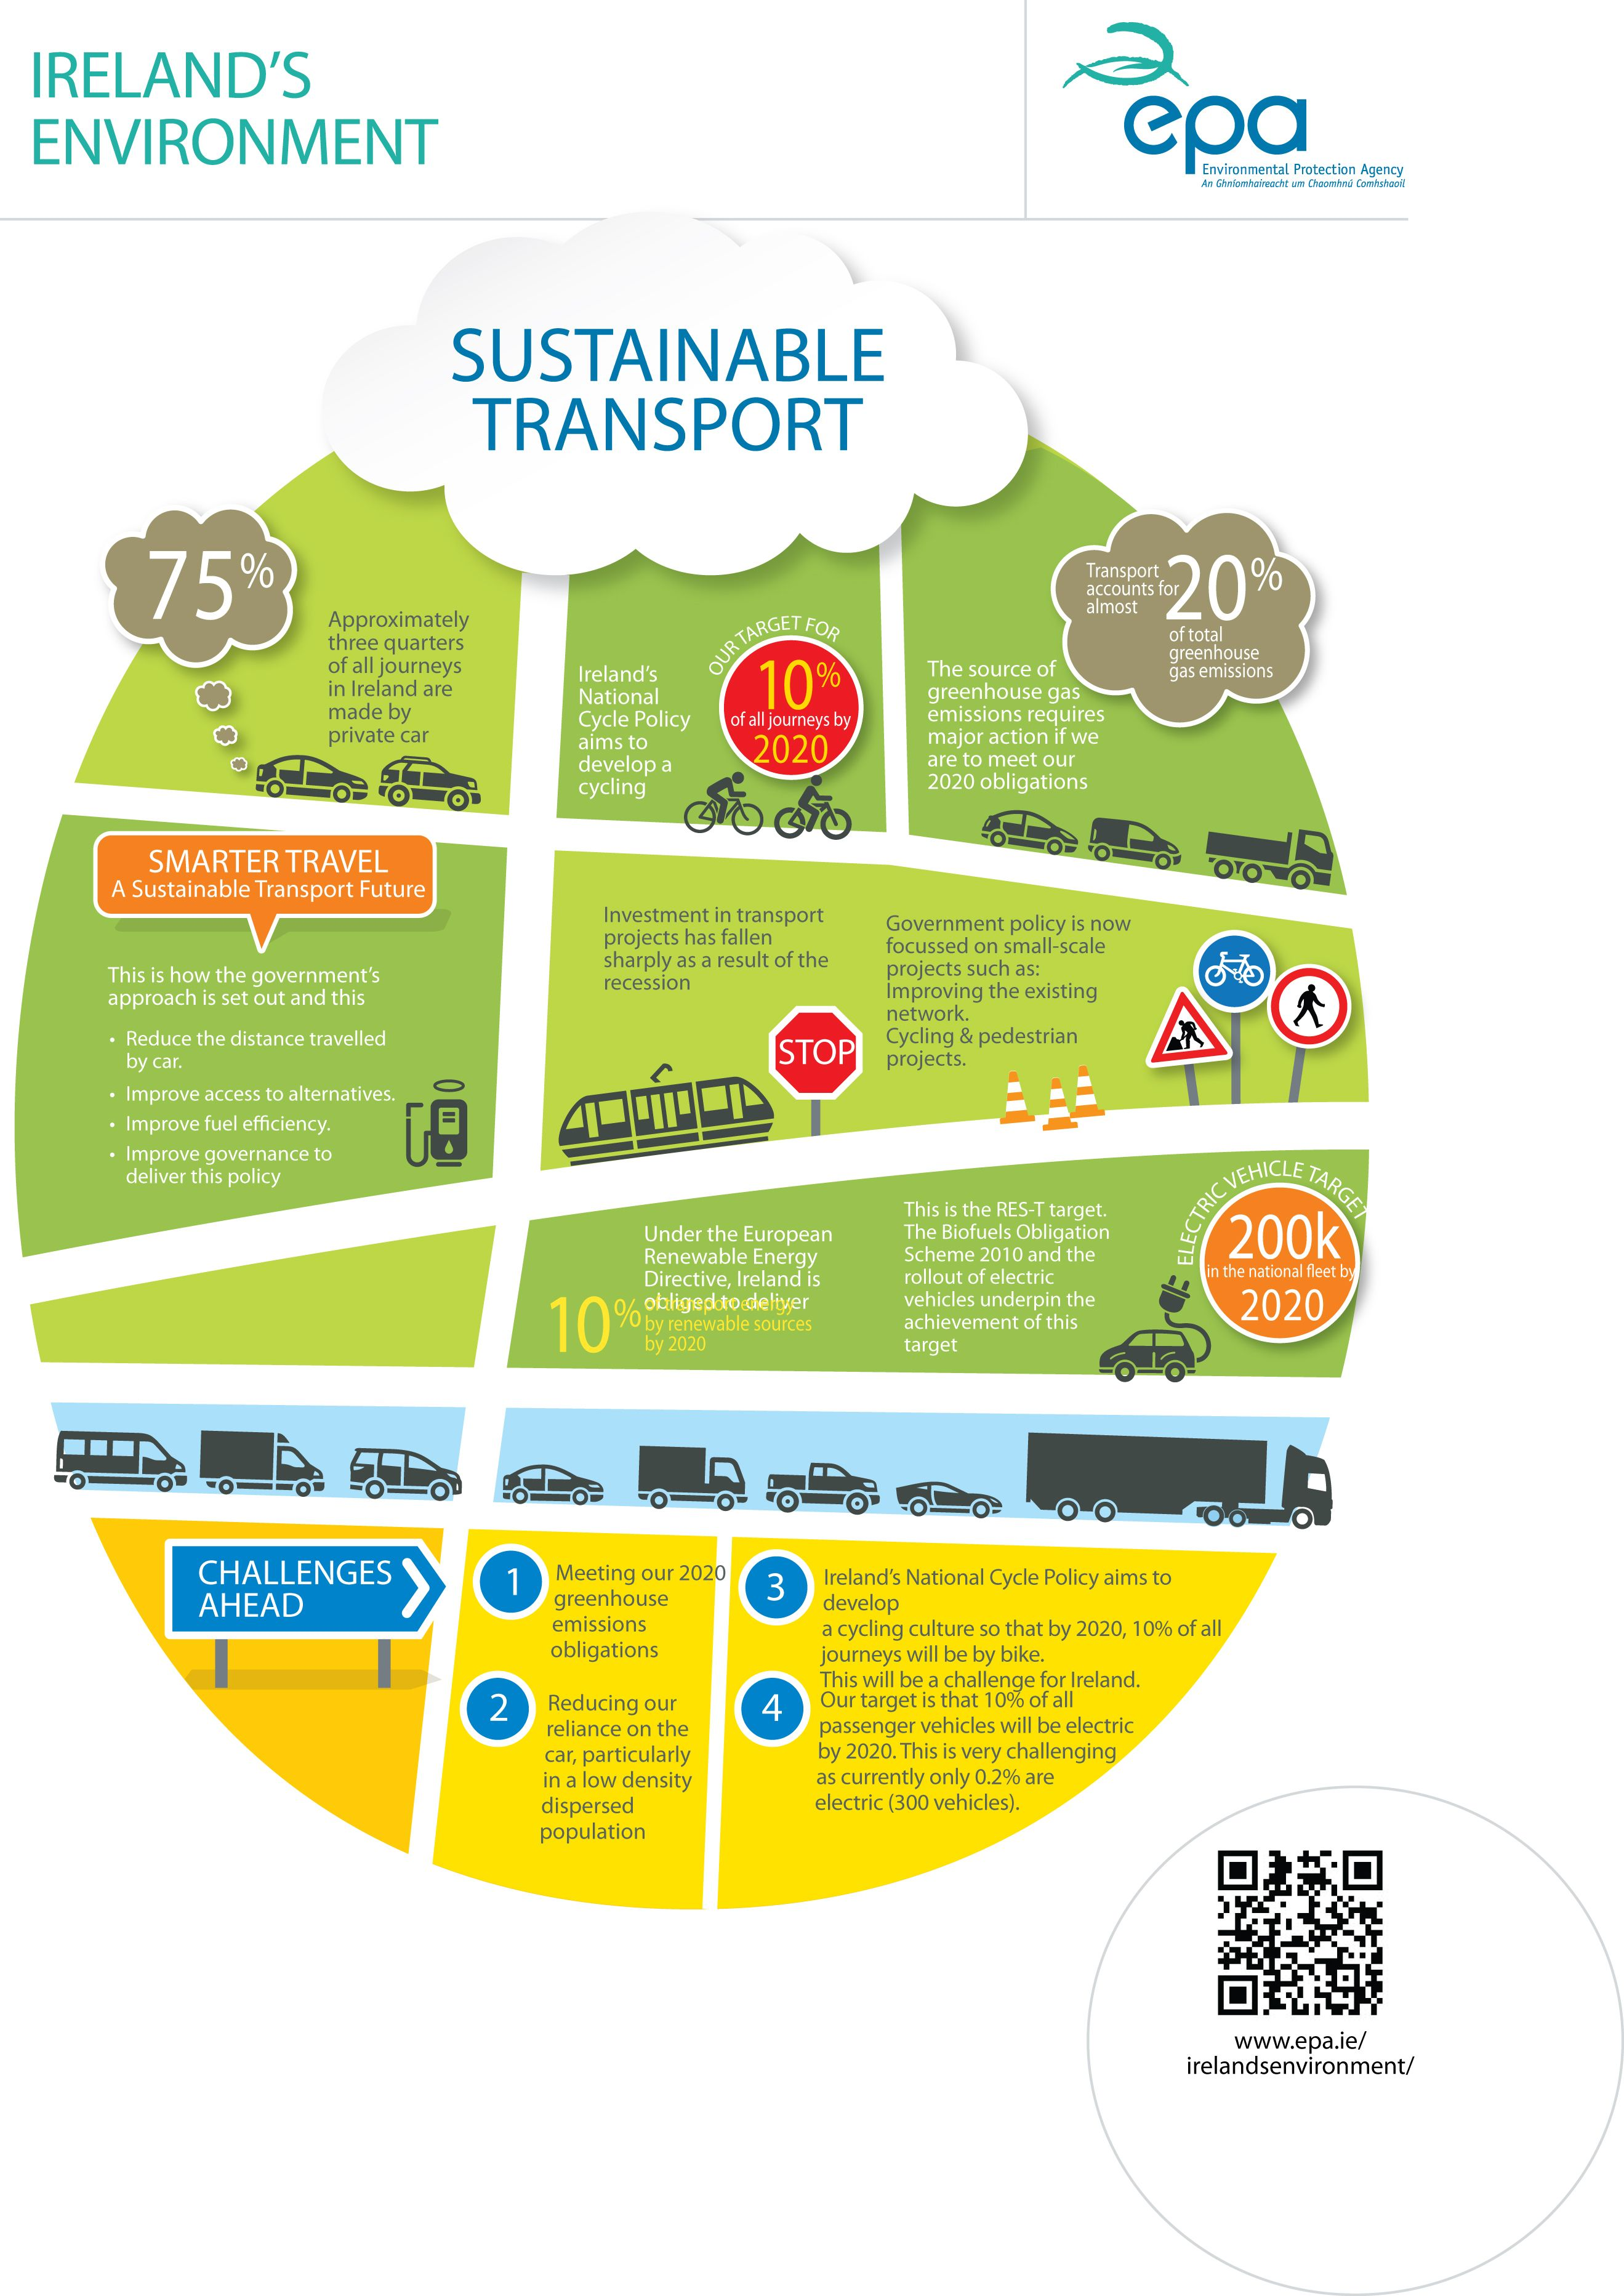 Repin 9 Sustainable Transport Sustainable Transport Transportation Public Transportation Infographic